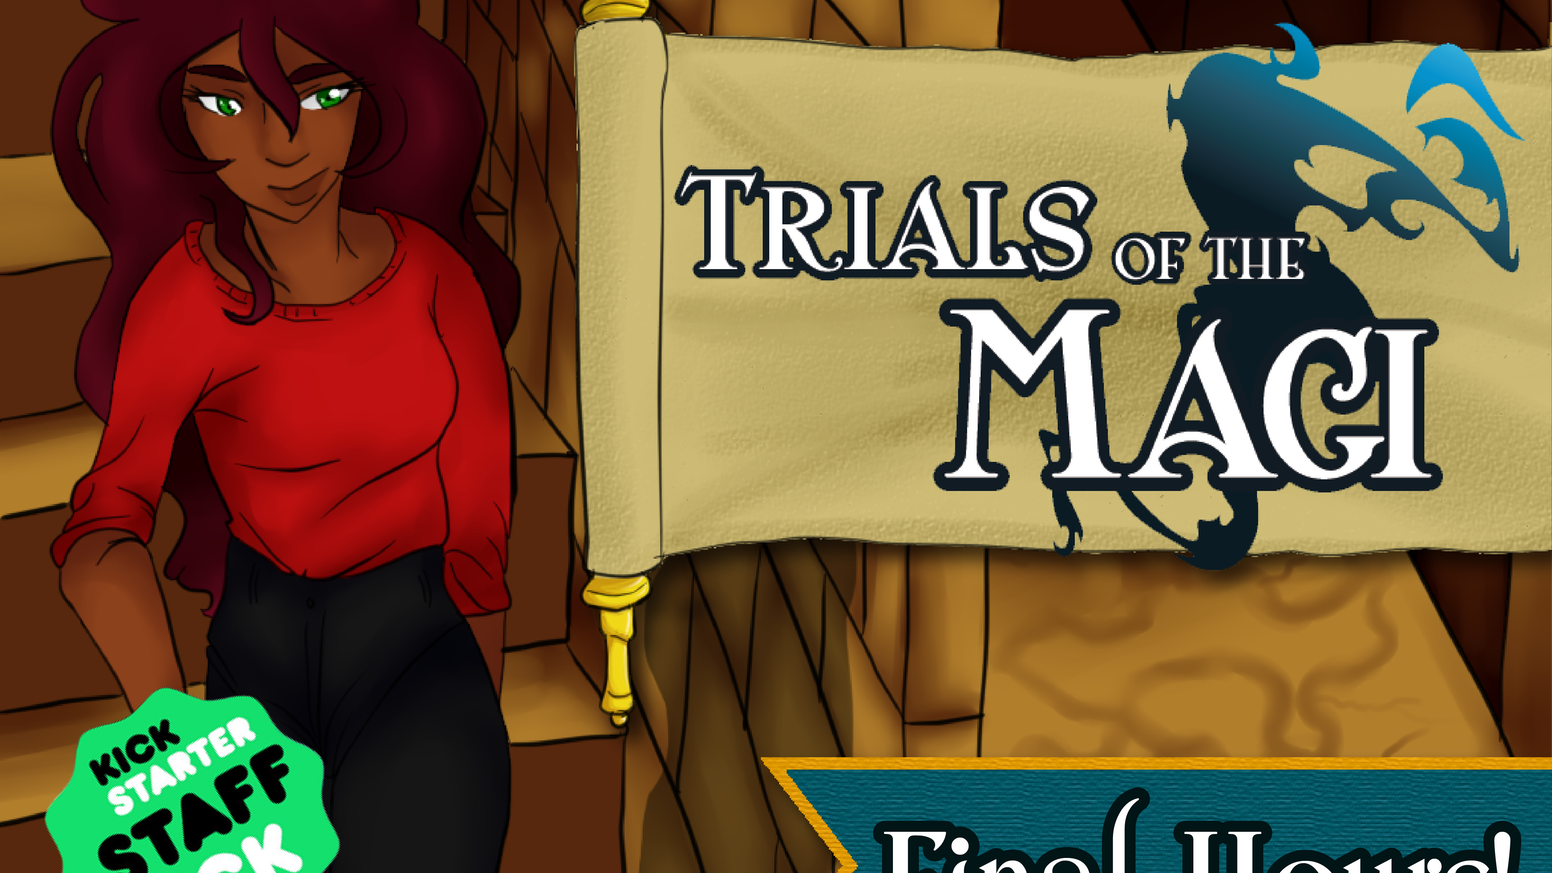 Trials Of The Magi Roleplaying Game By Sproutli Games Kickstarter - Most recent magi map by us states